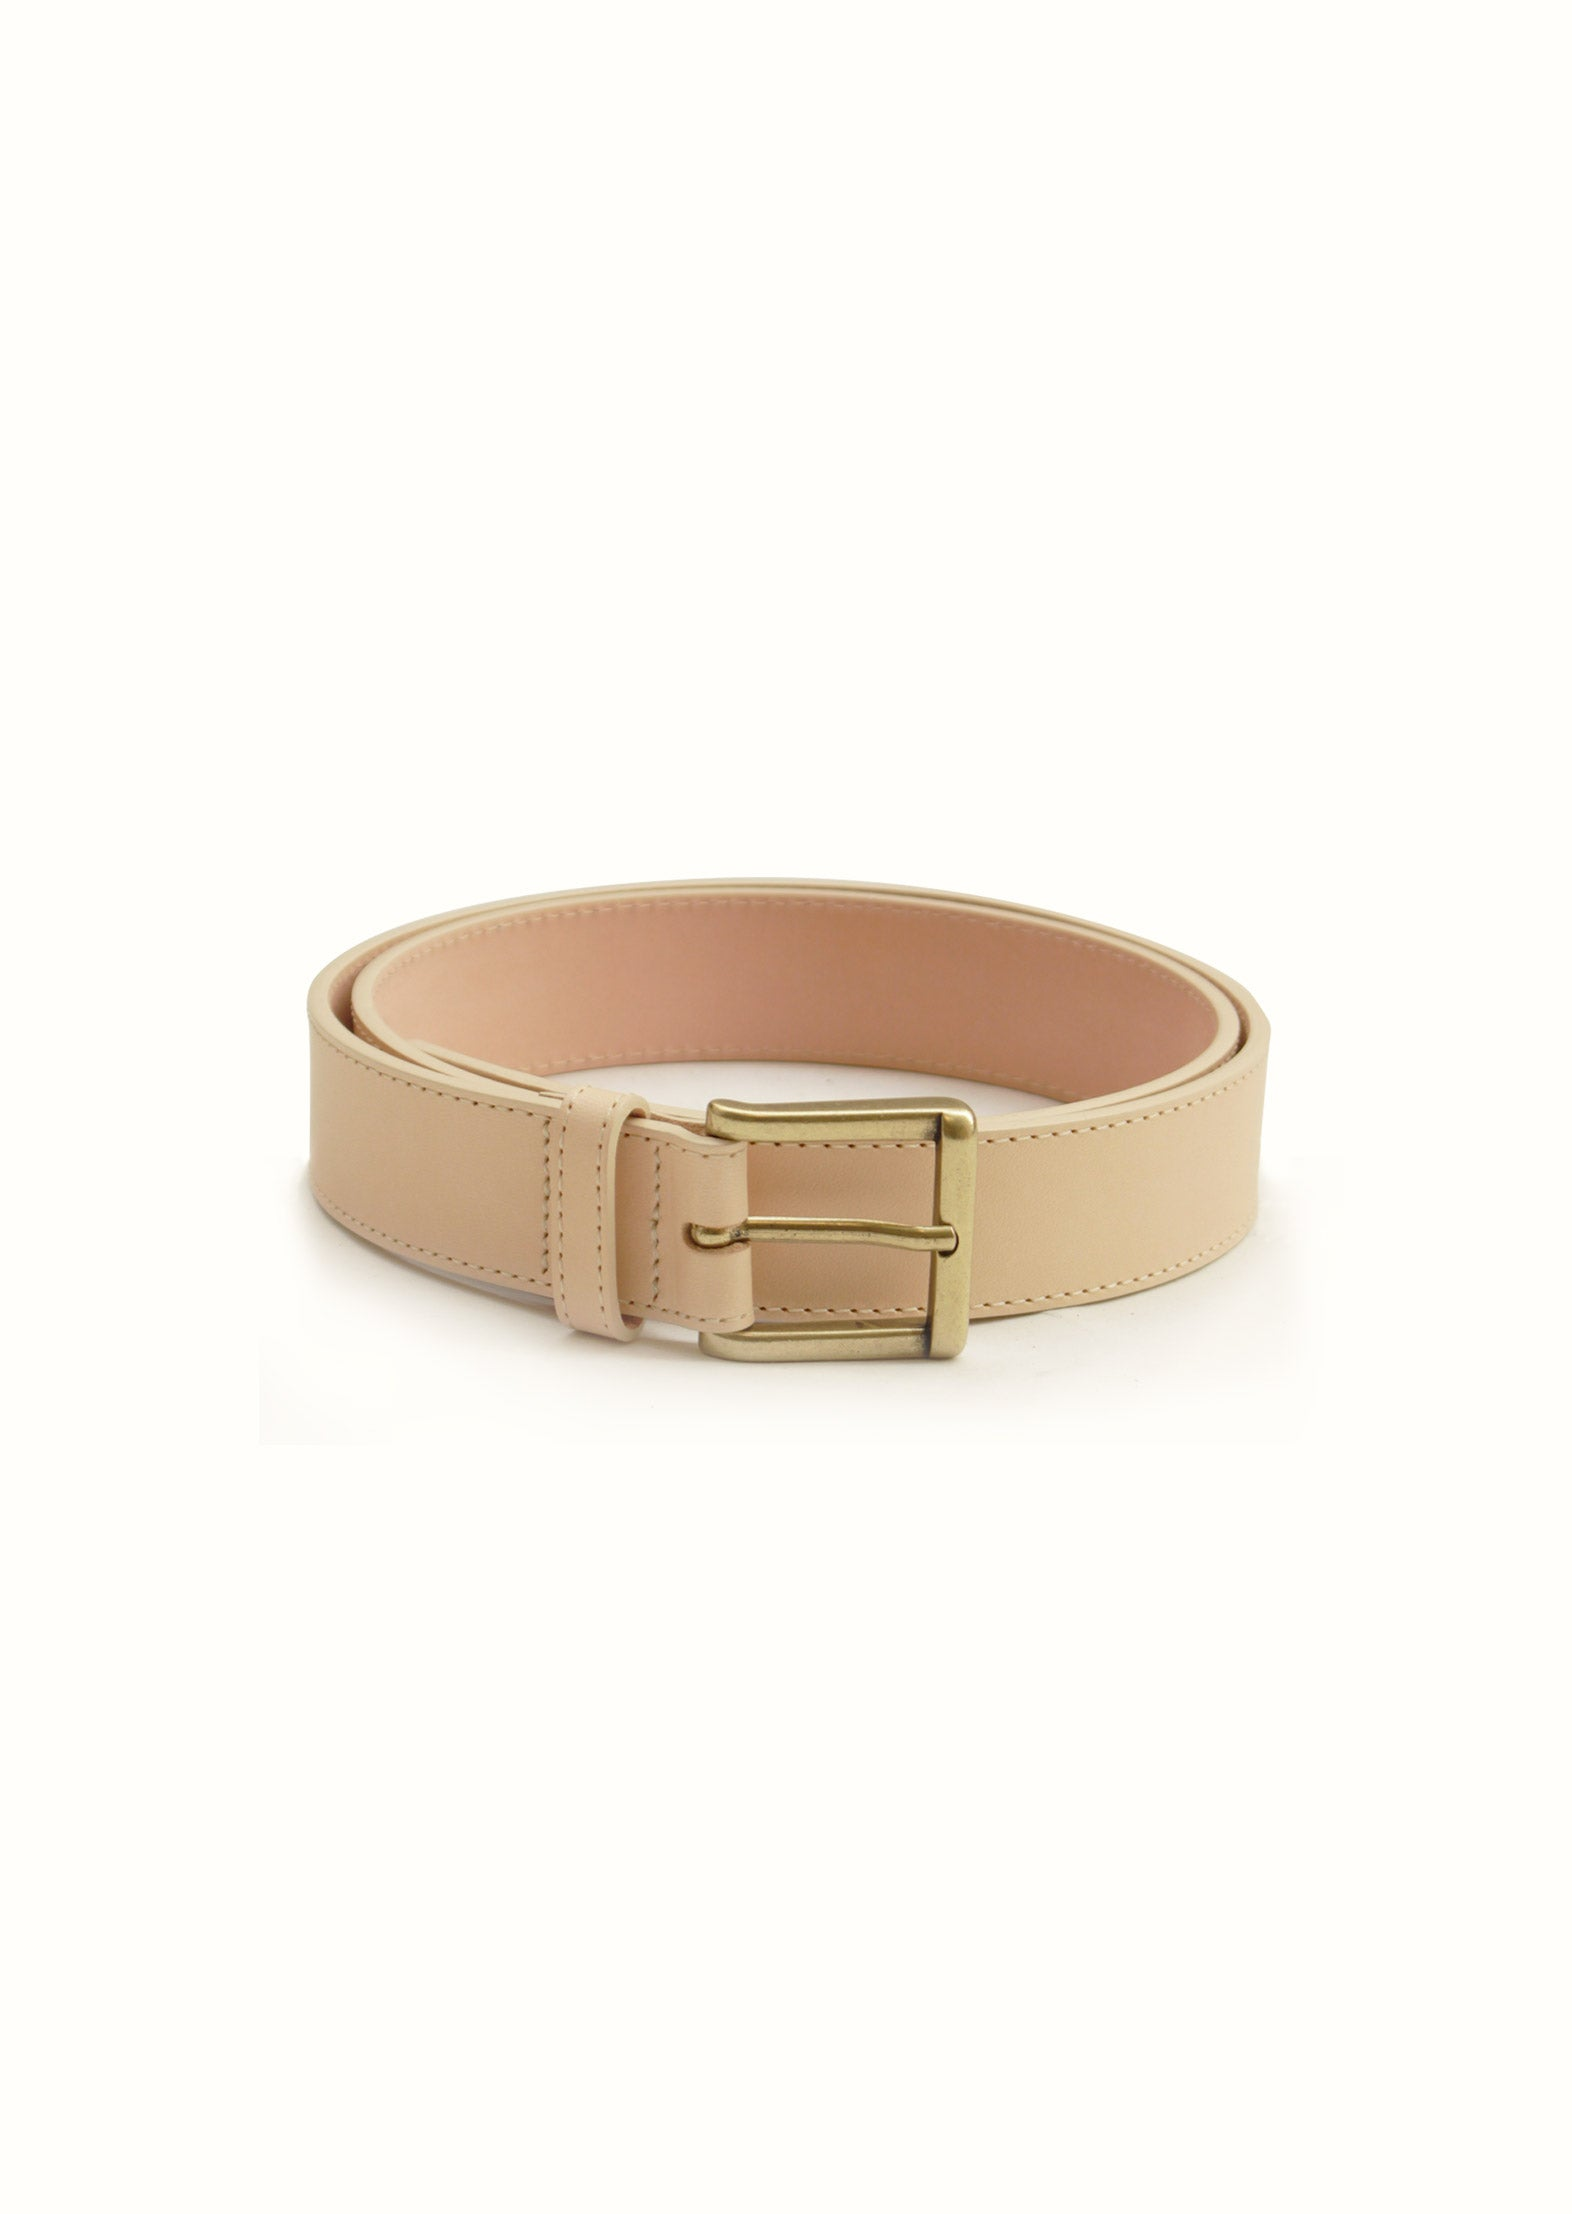 Essential belt - Vegetal tanned leather - Natural